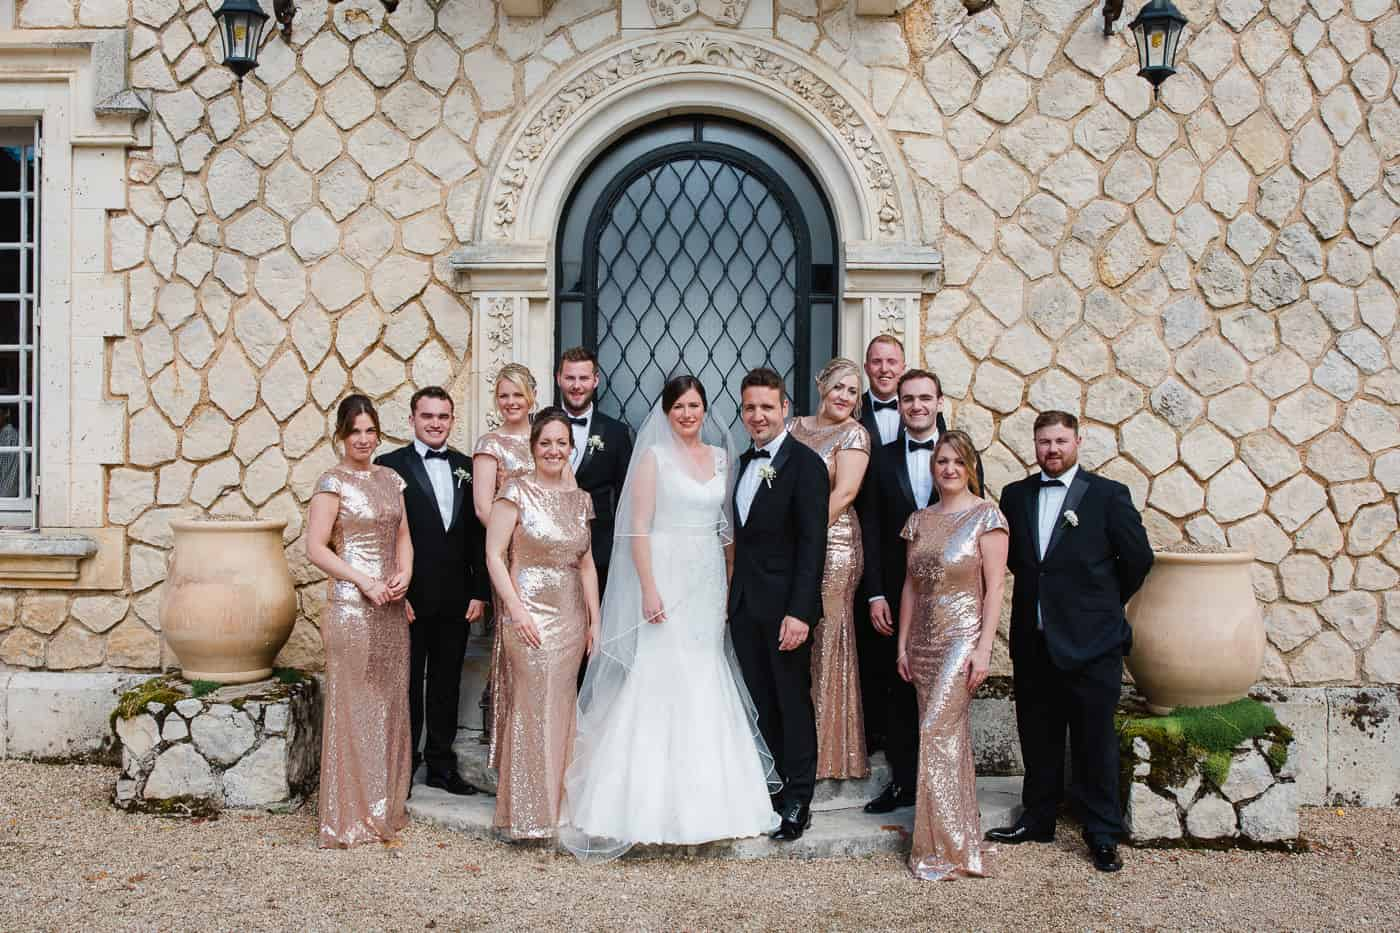 Chateau de la Couronne Wedding Photography - Bridal Party